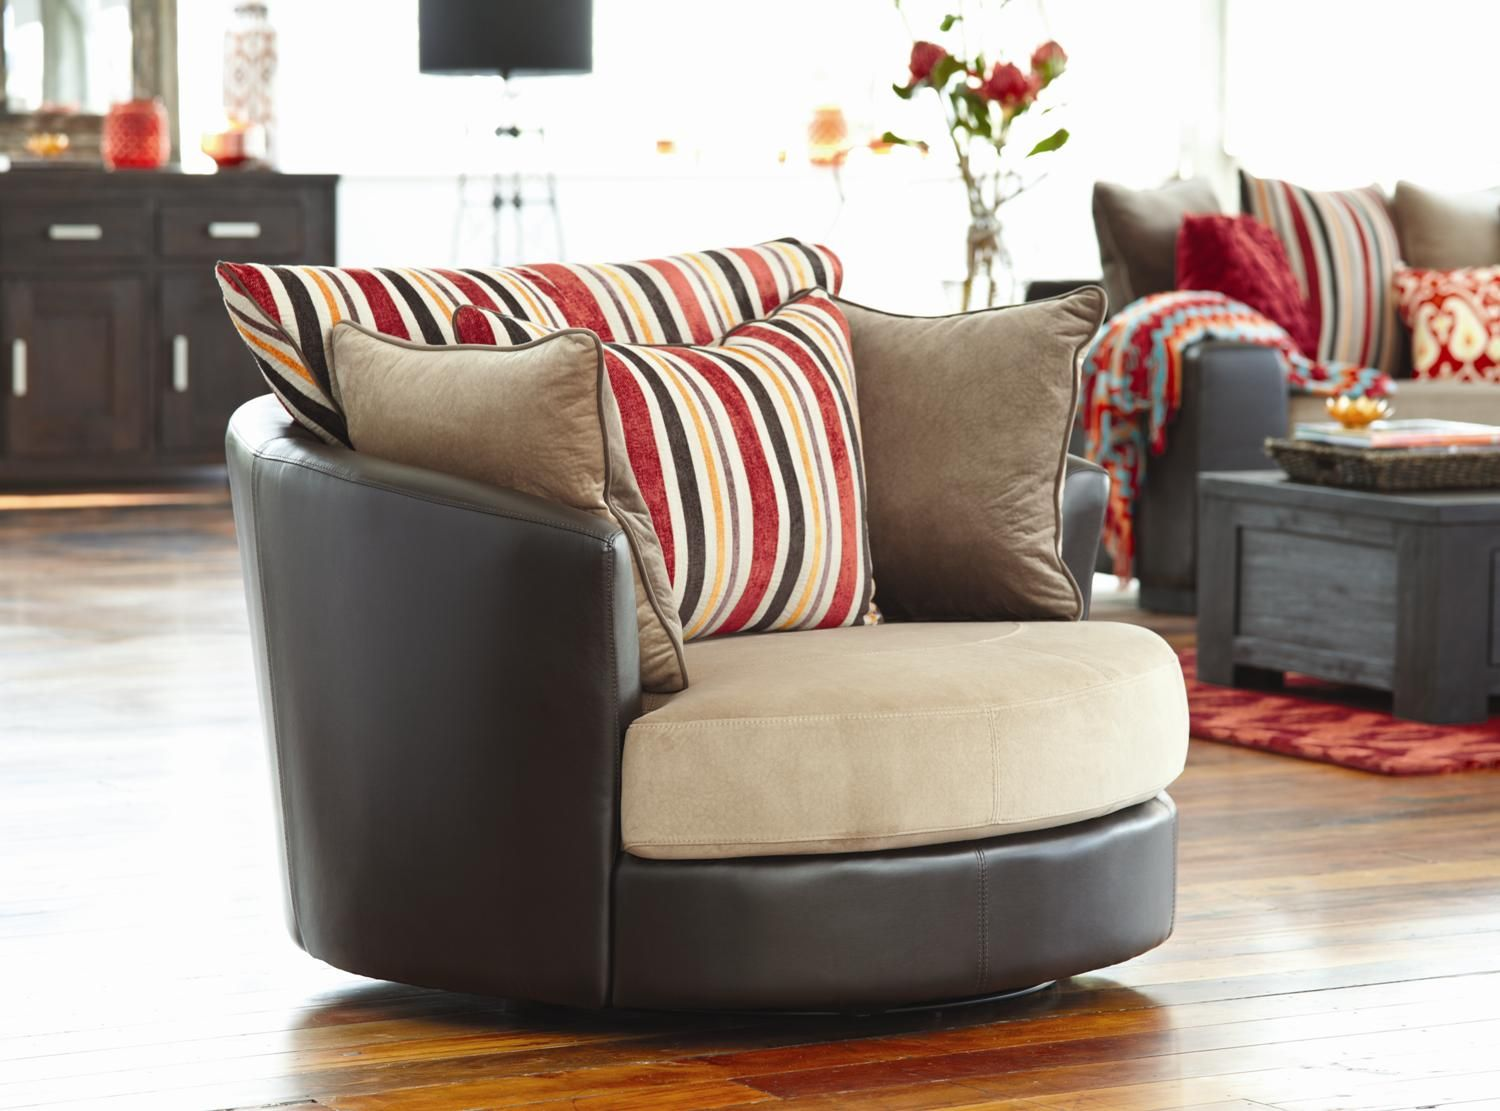 Swivel Recliner Chairs Nz Black Velvet Chair Covers Boston Large Brown From Harvey Norman